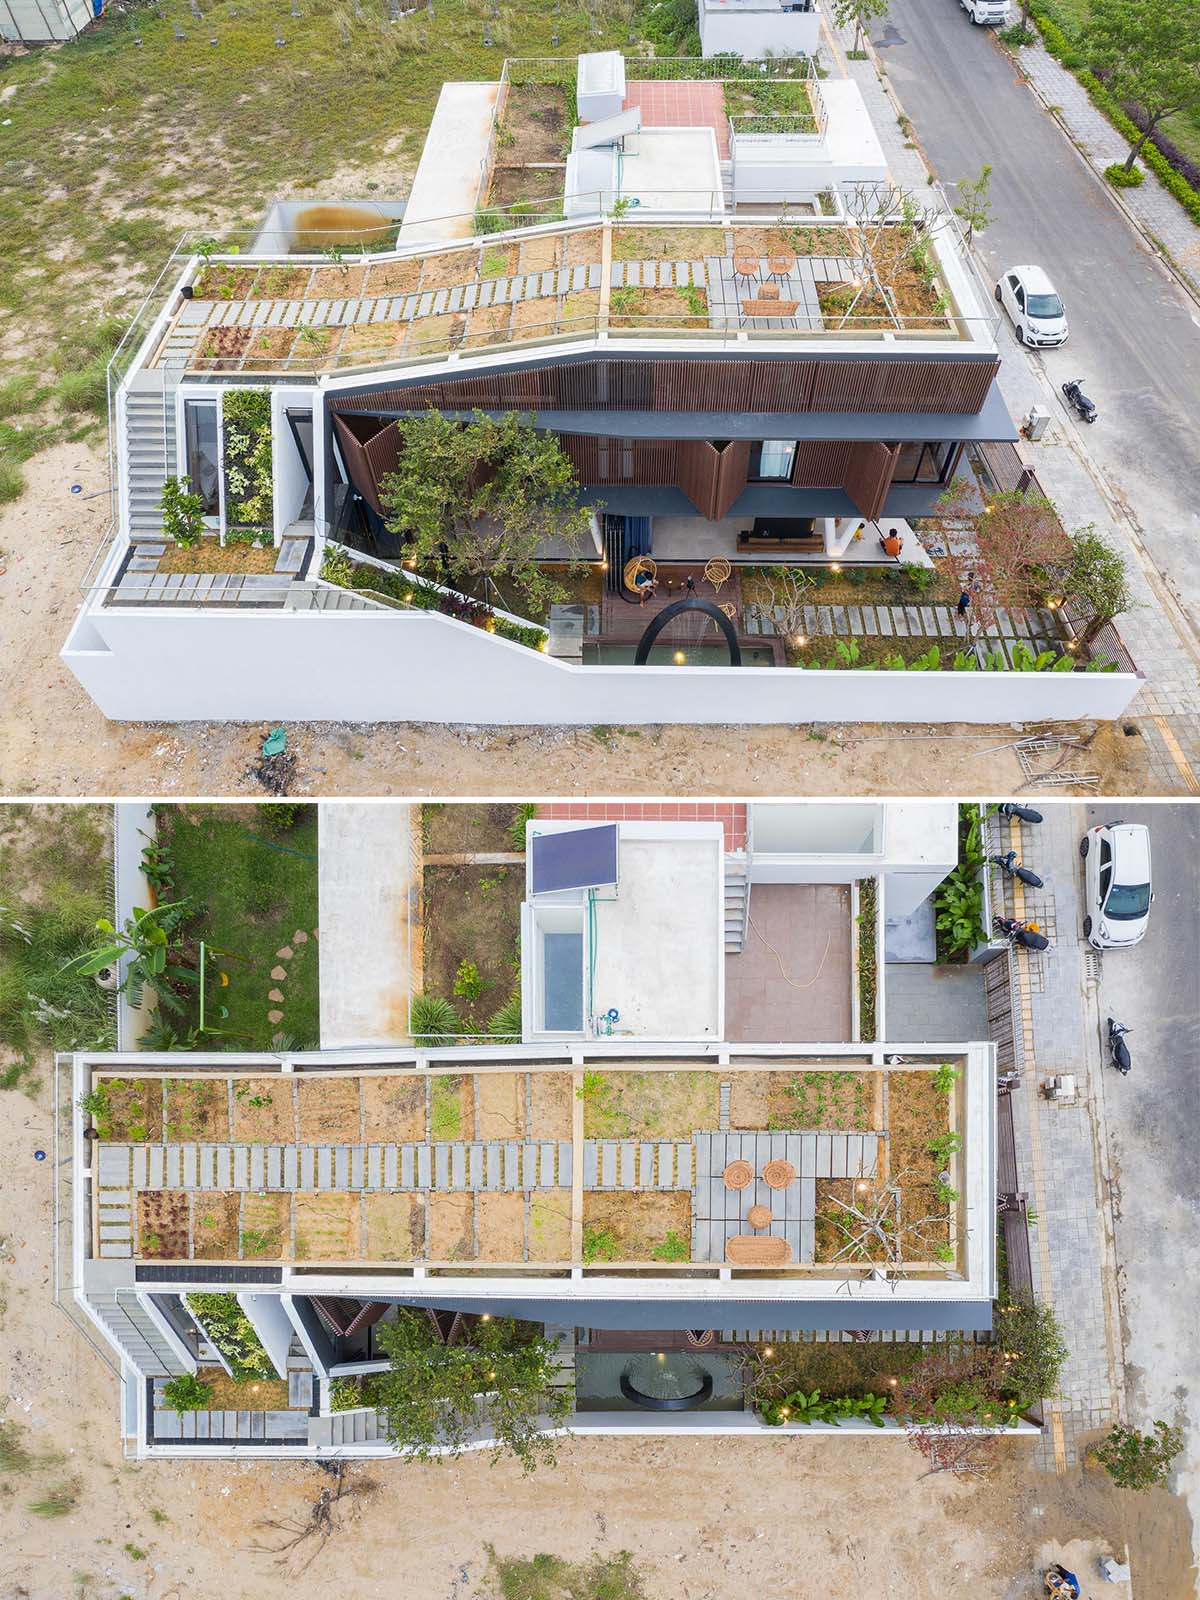 On the rooftop of this modern home, there's a small patio and a herb/vegetable garden that produces enough for daily use.